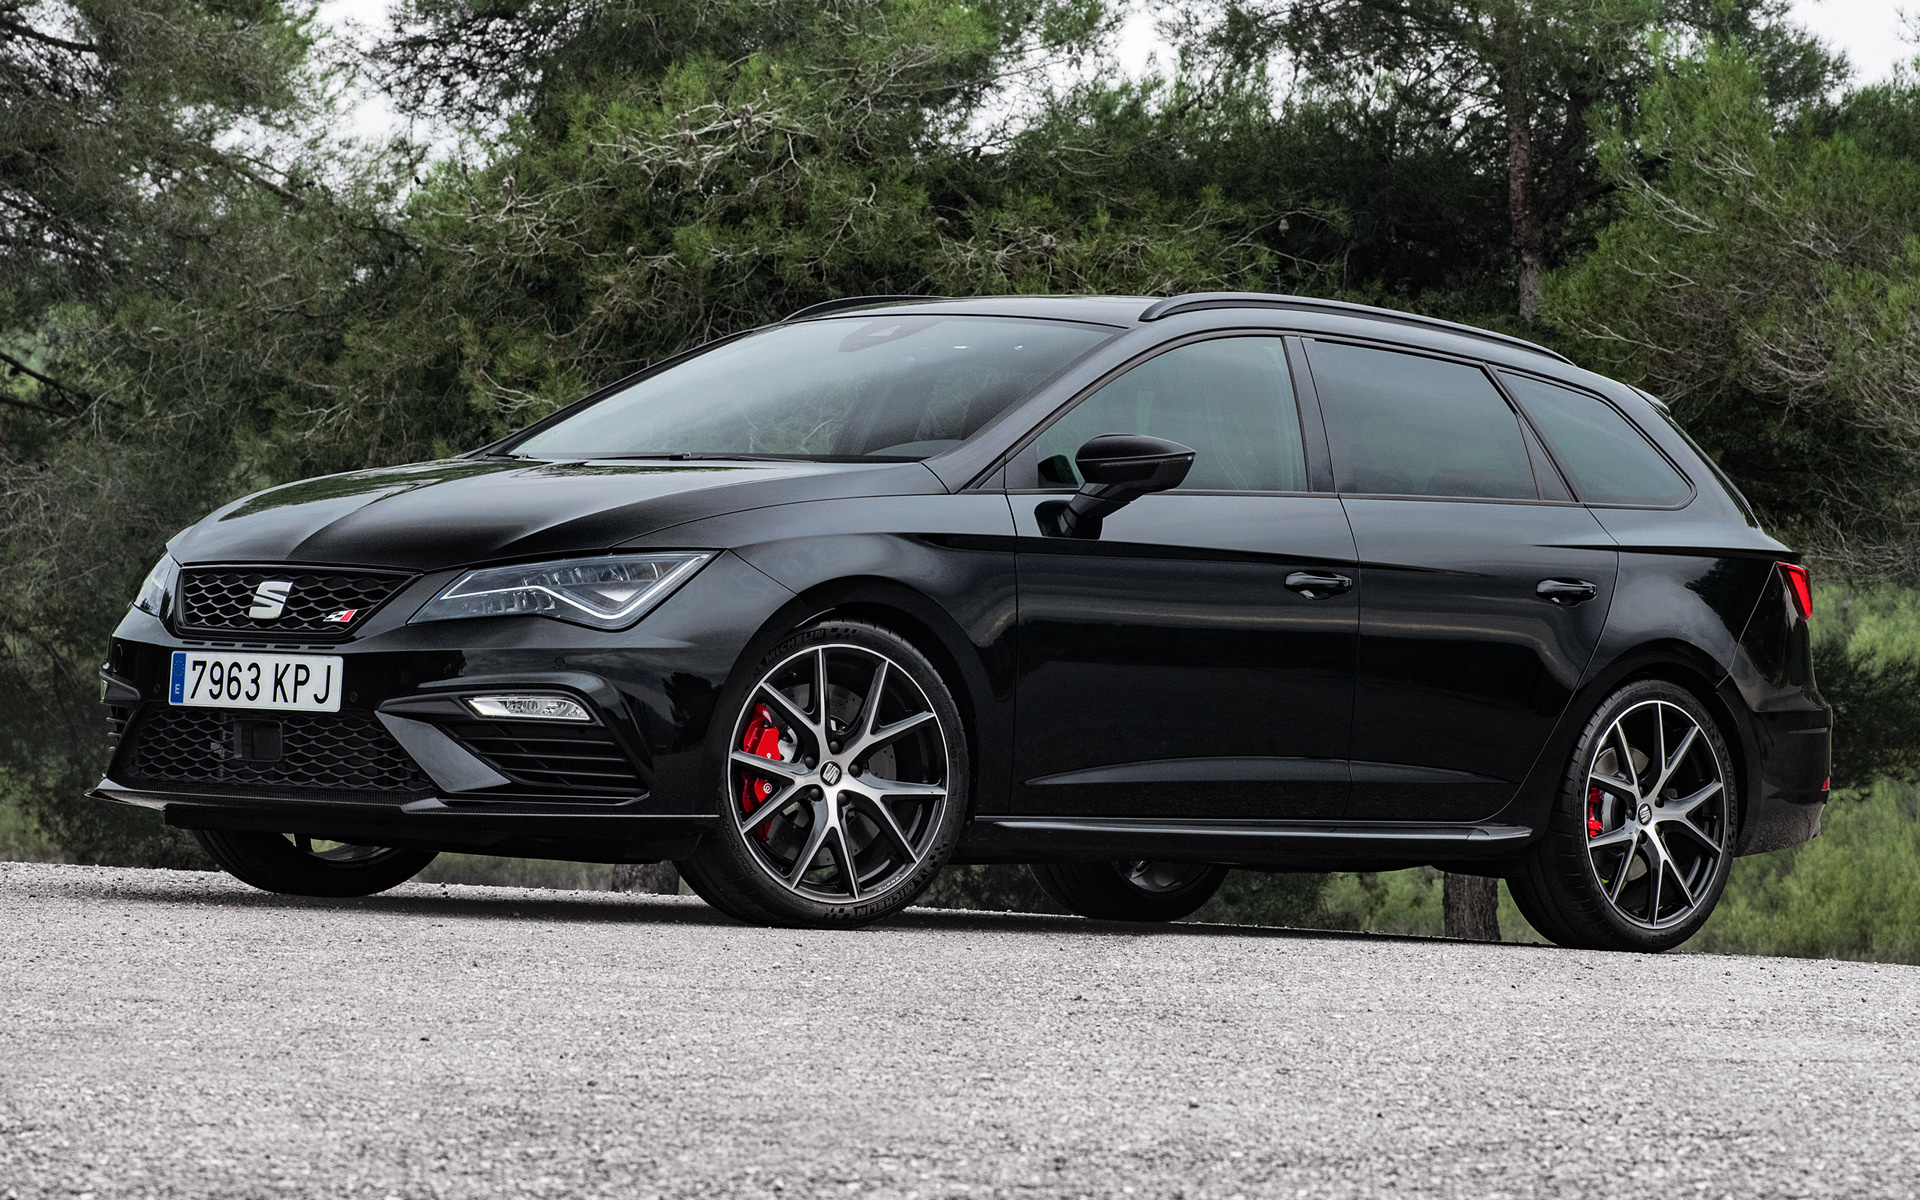 2018 seat leon st cupra 300 carbon edition wallpapers. Black Bedroom Furniture Sets. Home Design Ideas